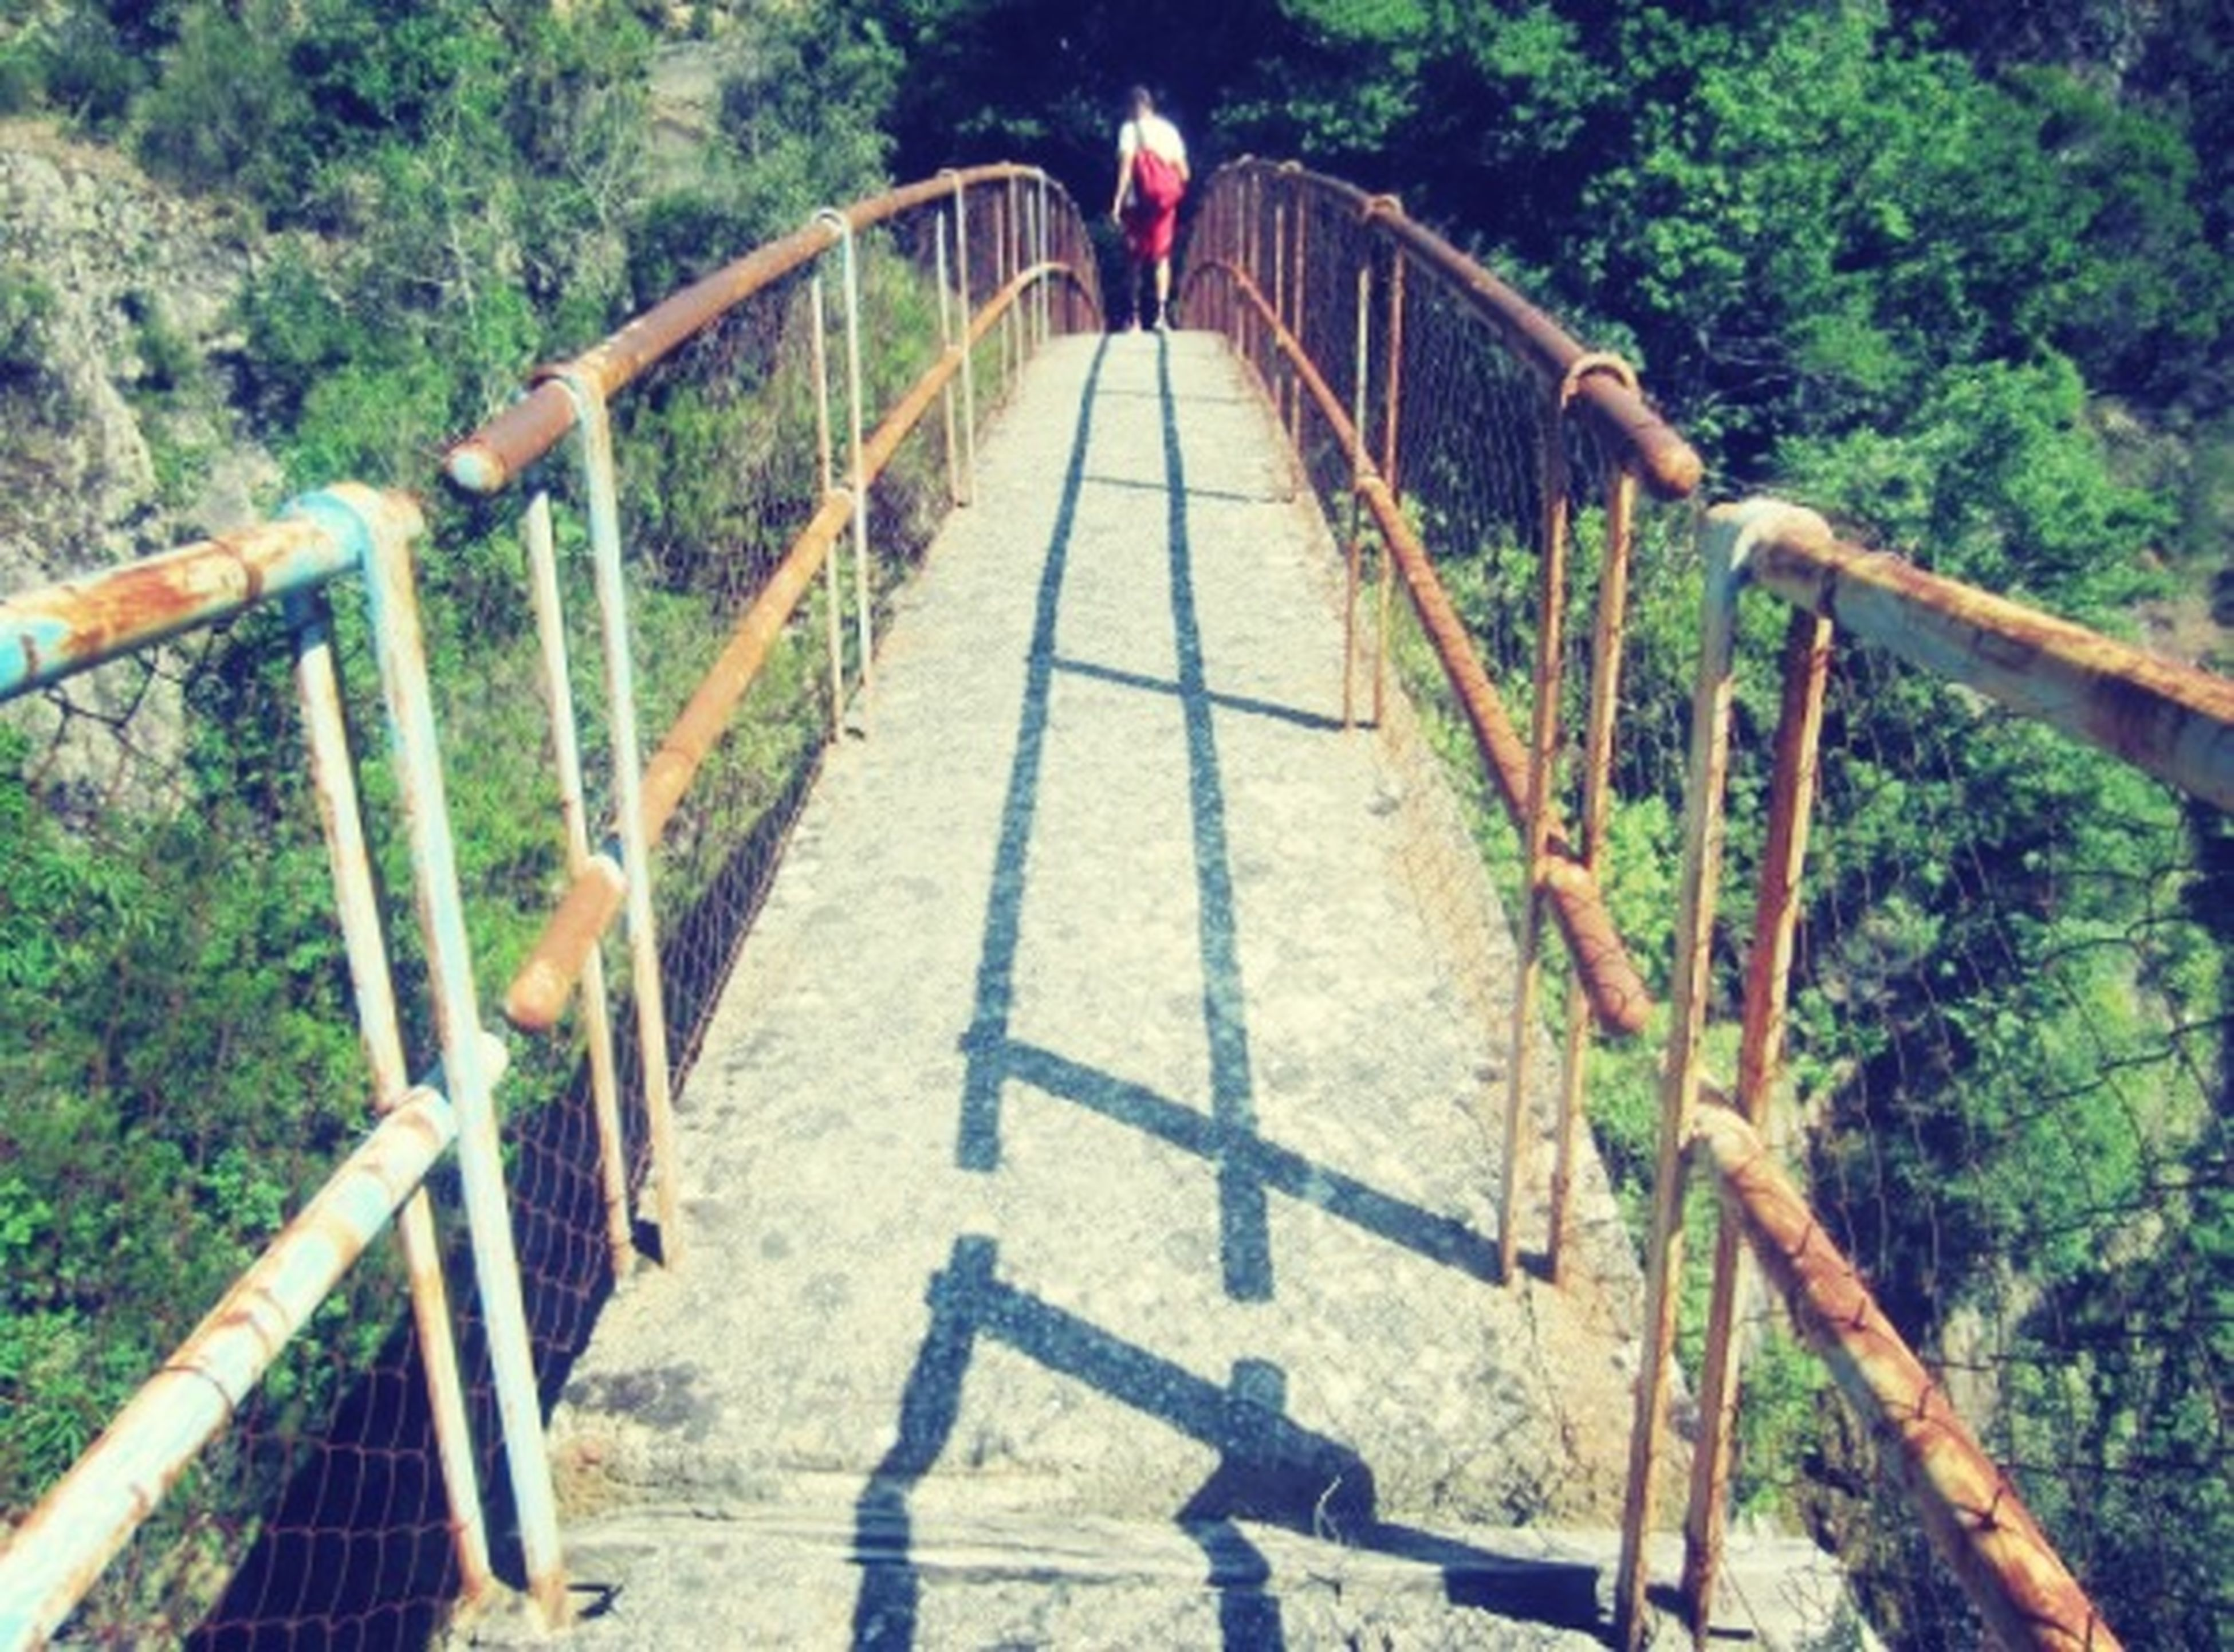 railing, the way forward, footbridge, tree, connection, bridge - man made structure, diminishing perspective, steps, steps and staircases, tranquility, nature, forest, vanishing point, walking, growth, high angle view, bridge, plant, built structure